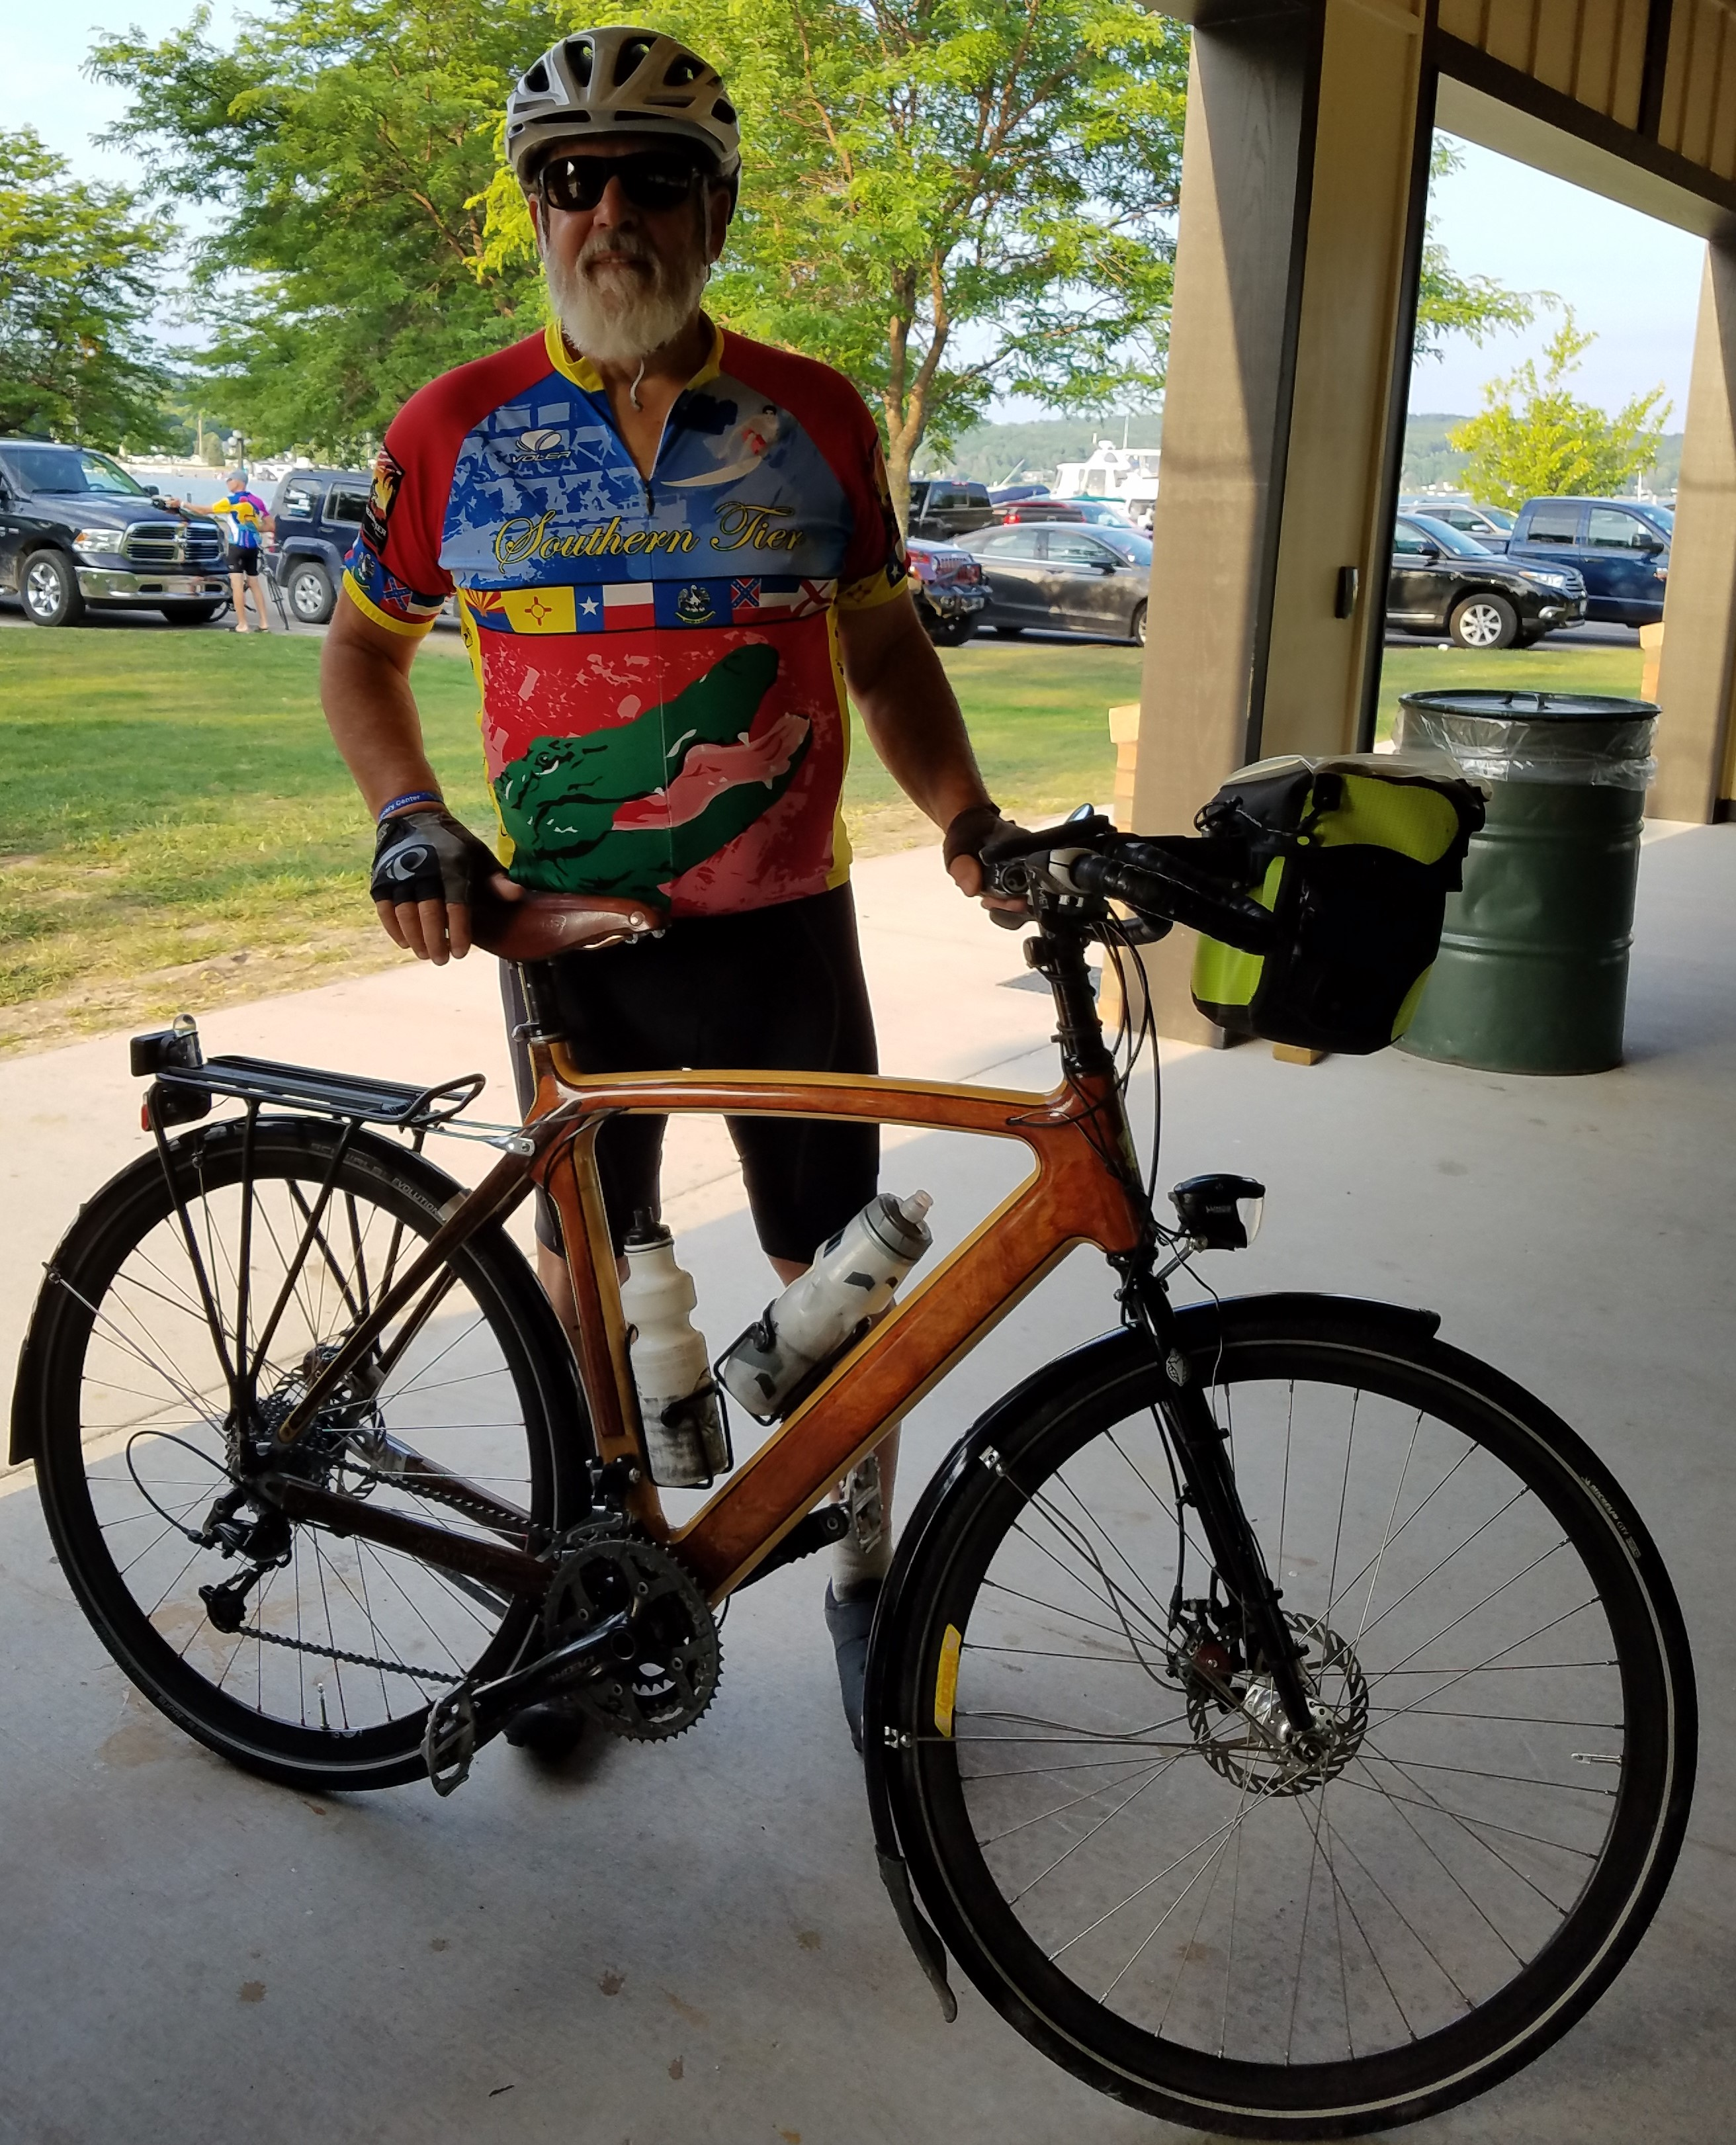 Raven Hill Bike Event: Pedal, Pint and Pig